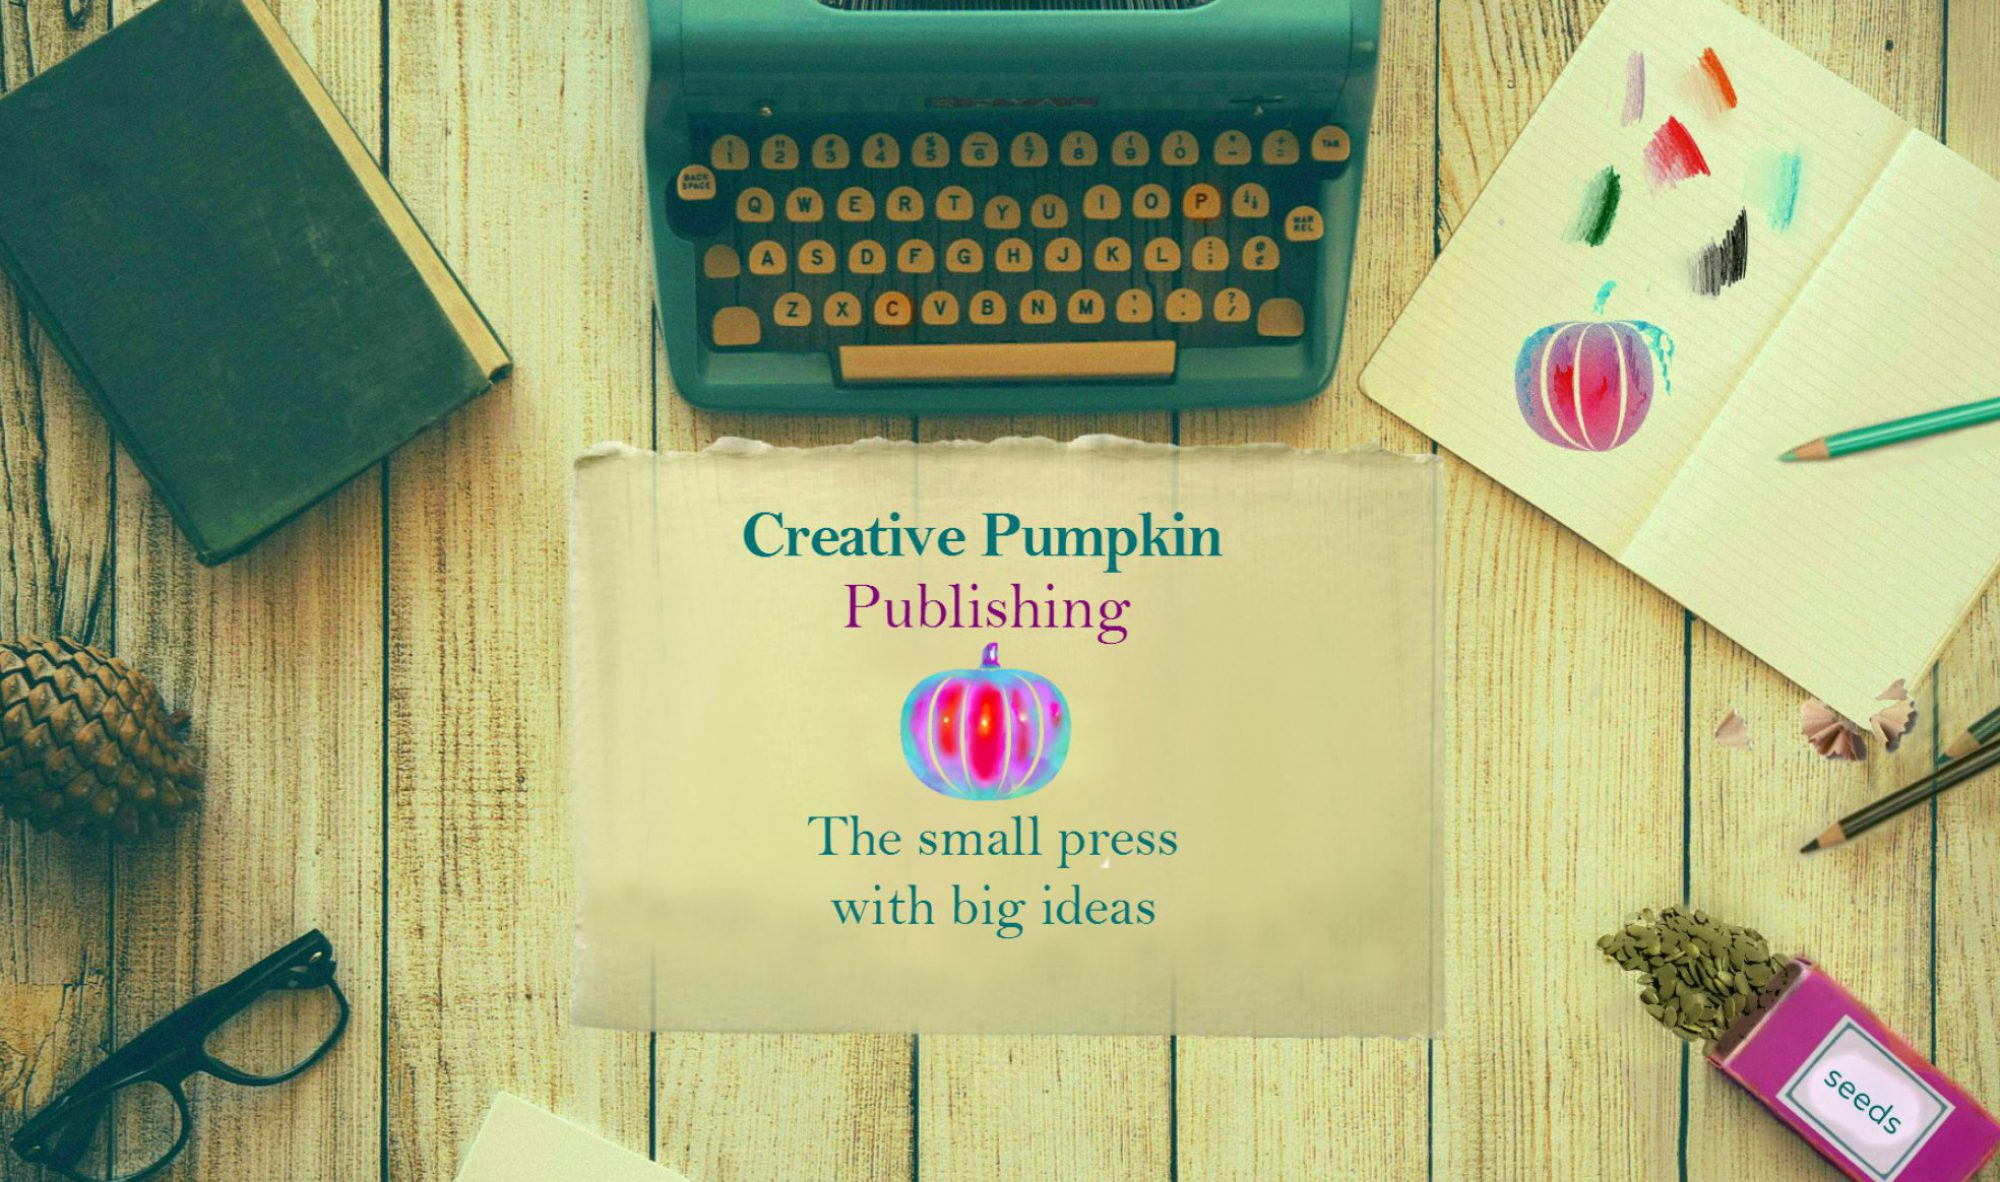 Creative Pumpkin Publishing